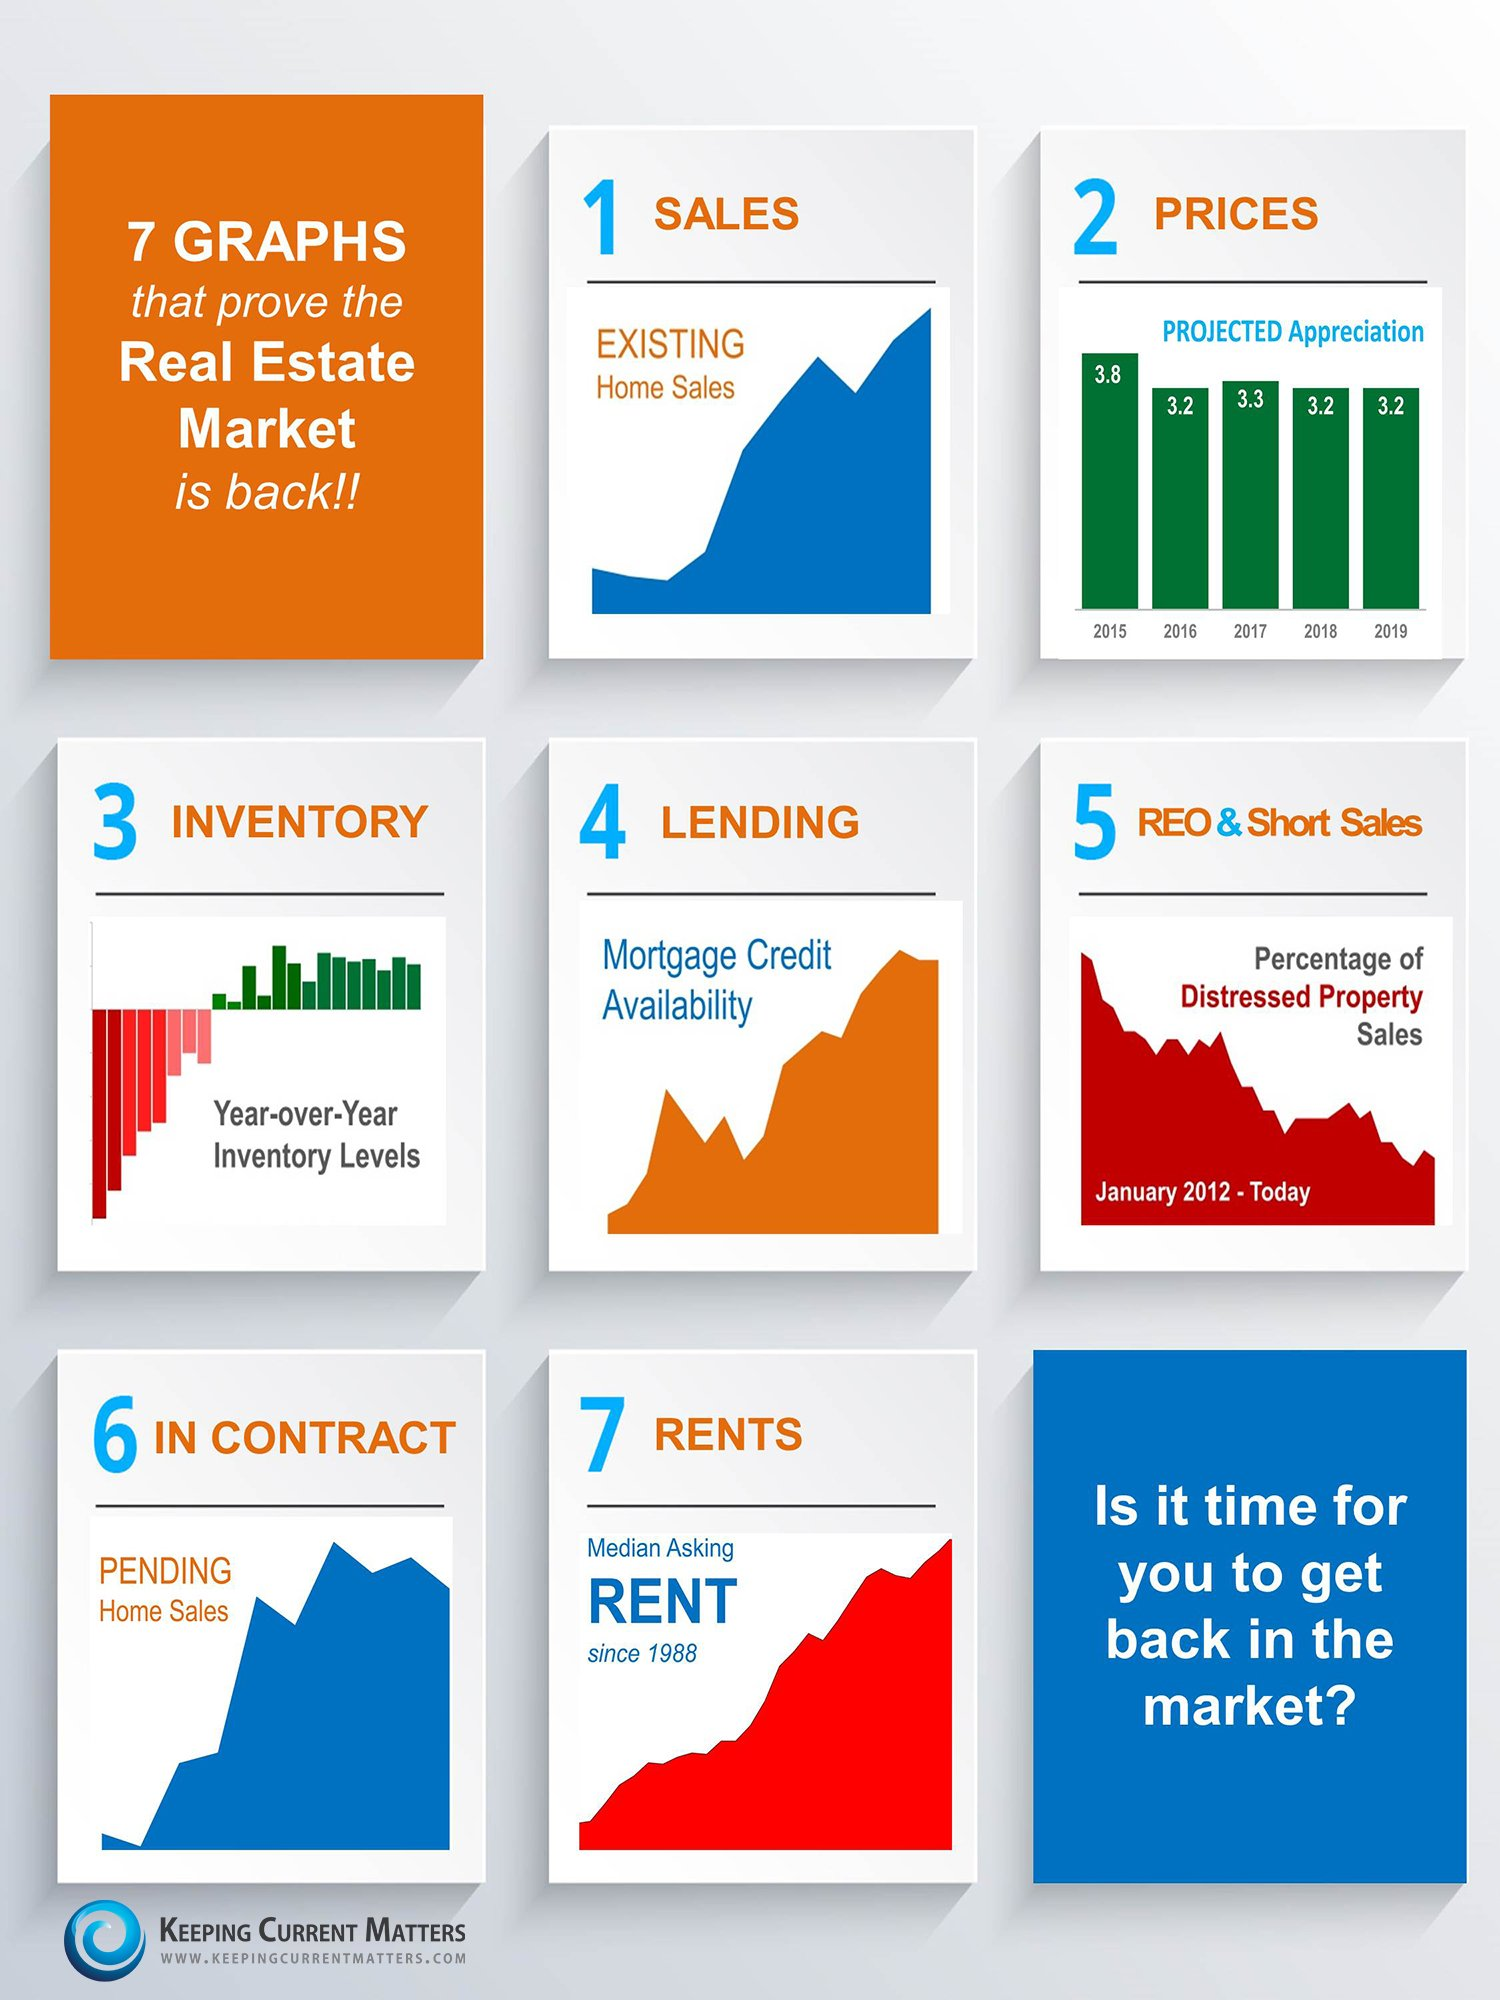 7 Graphs that prove the Real Estate Market is Back! | Keeping Current Matters